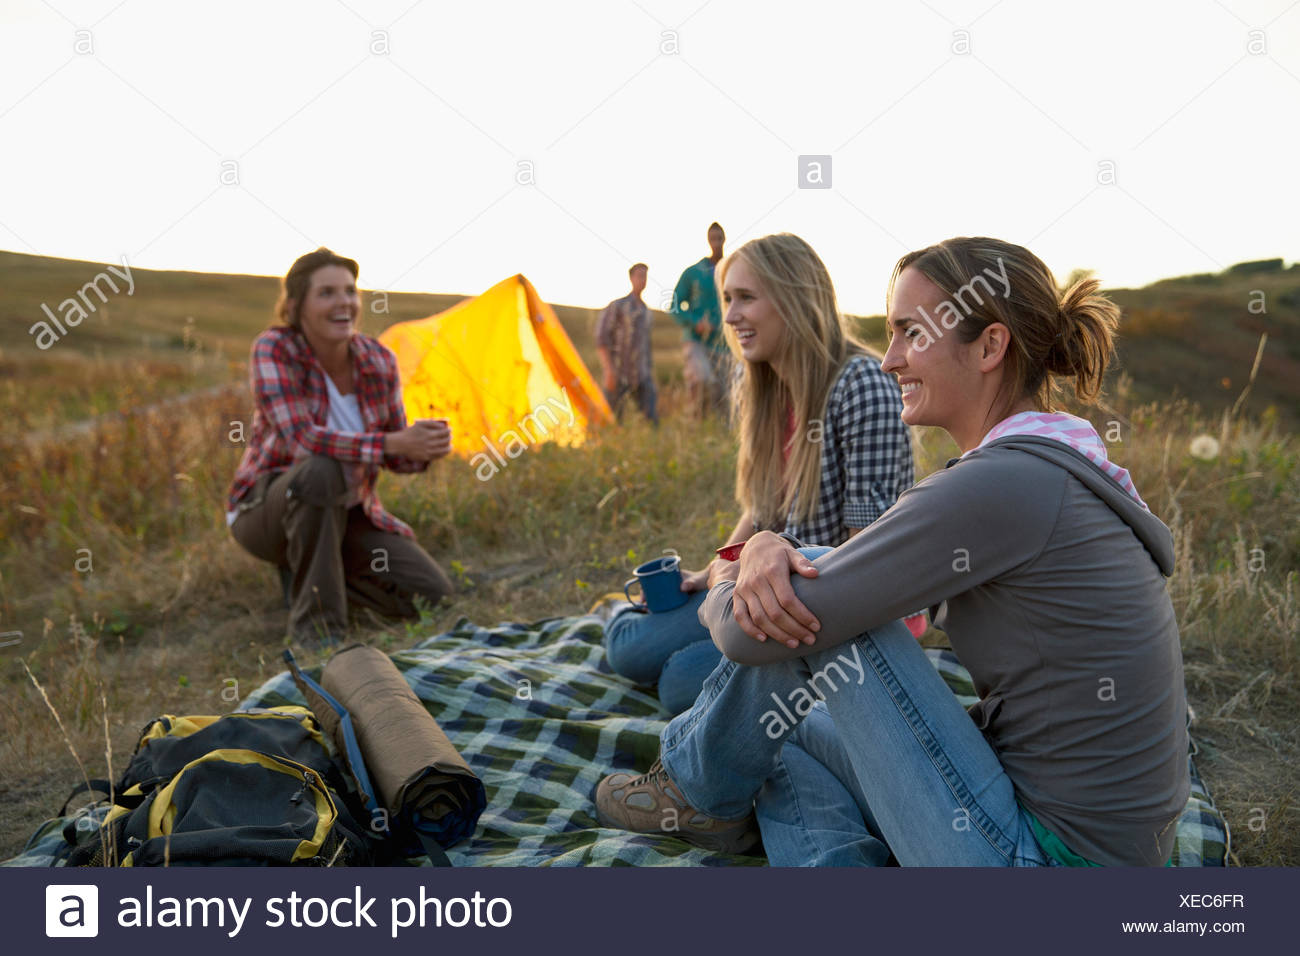 Friends sharing a laugh while camping. - Stock Image